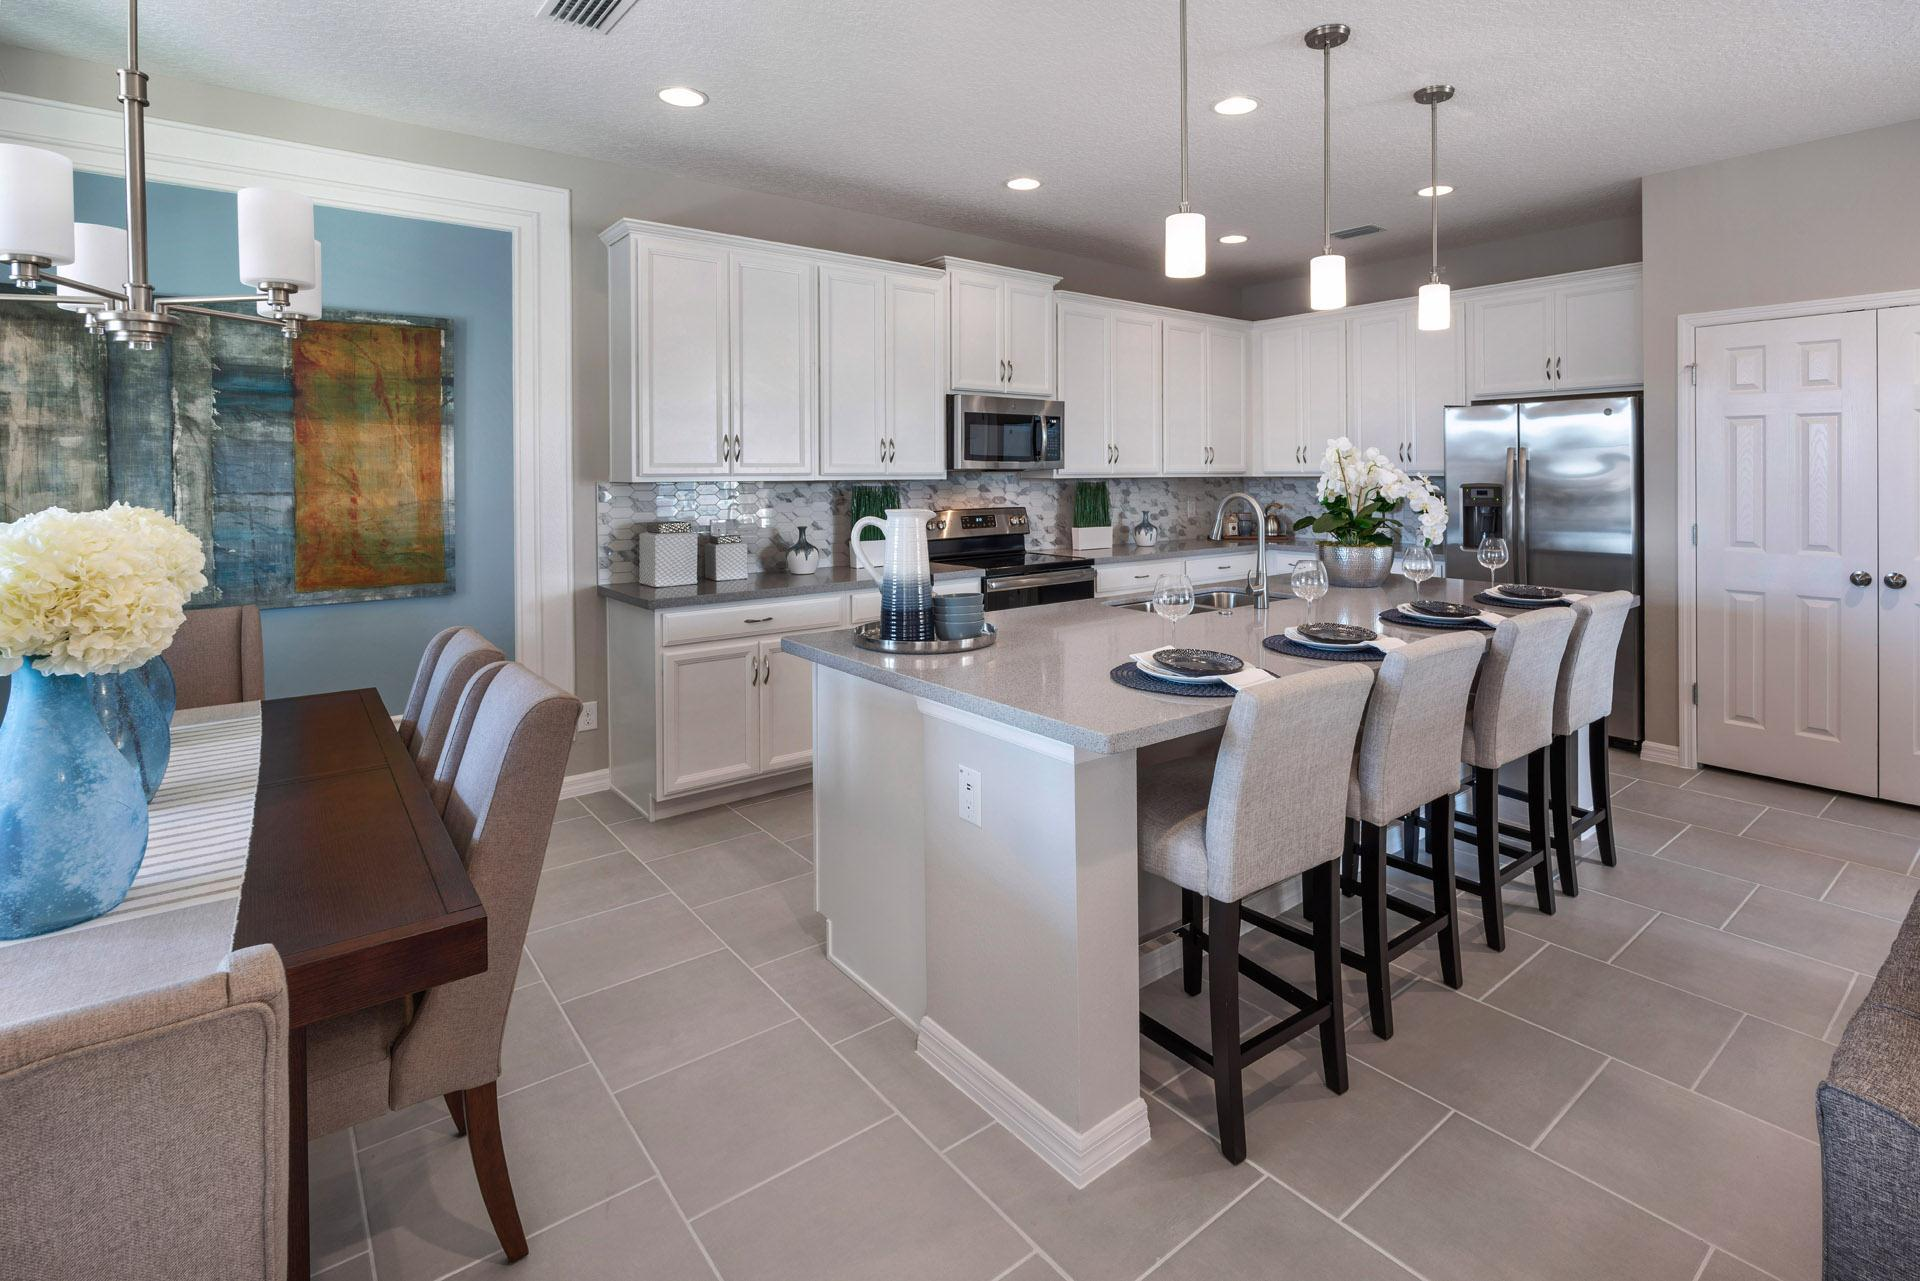 Kitchen featured in the Kensington Flex By Hanover Family Builders in Lakeland-Winter Haven, FL